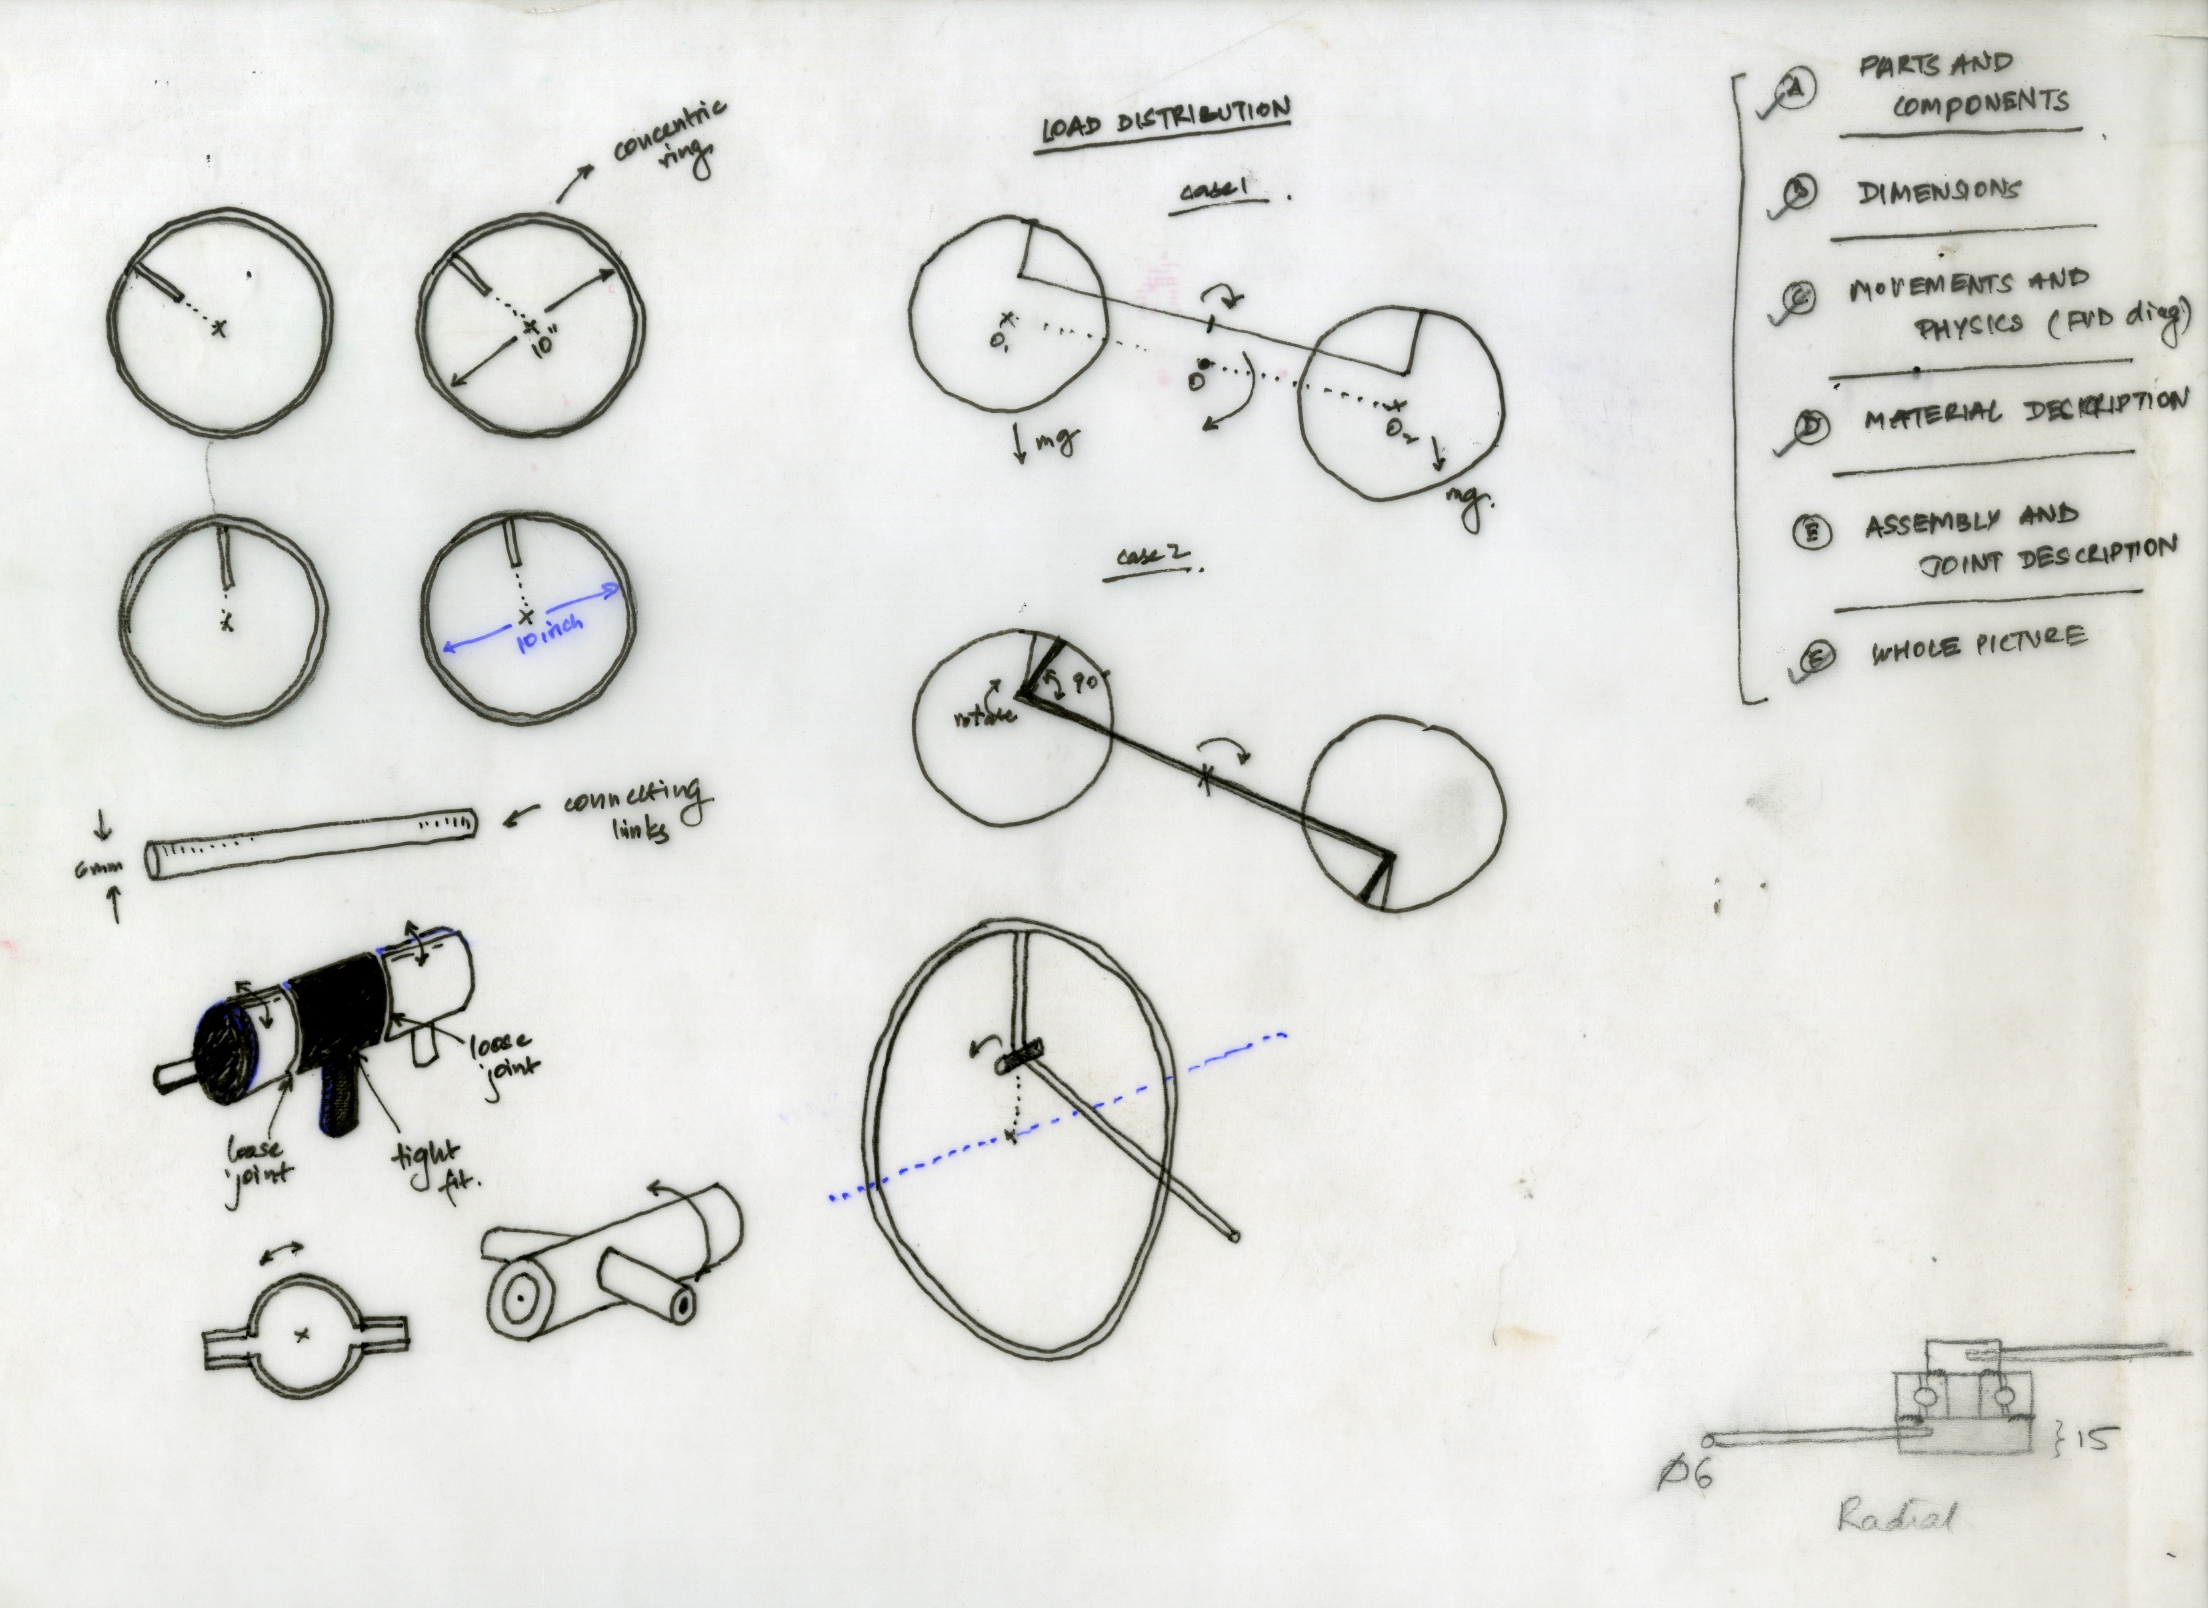 Rings and joints diagrams